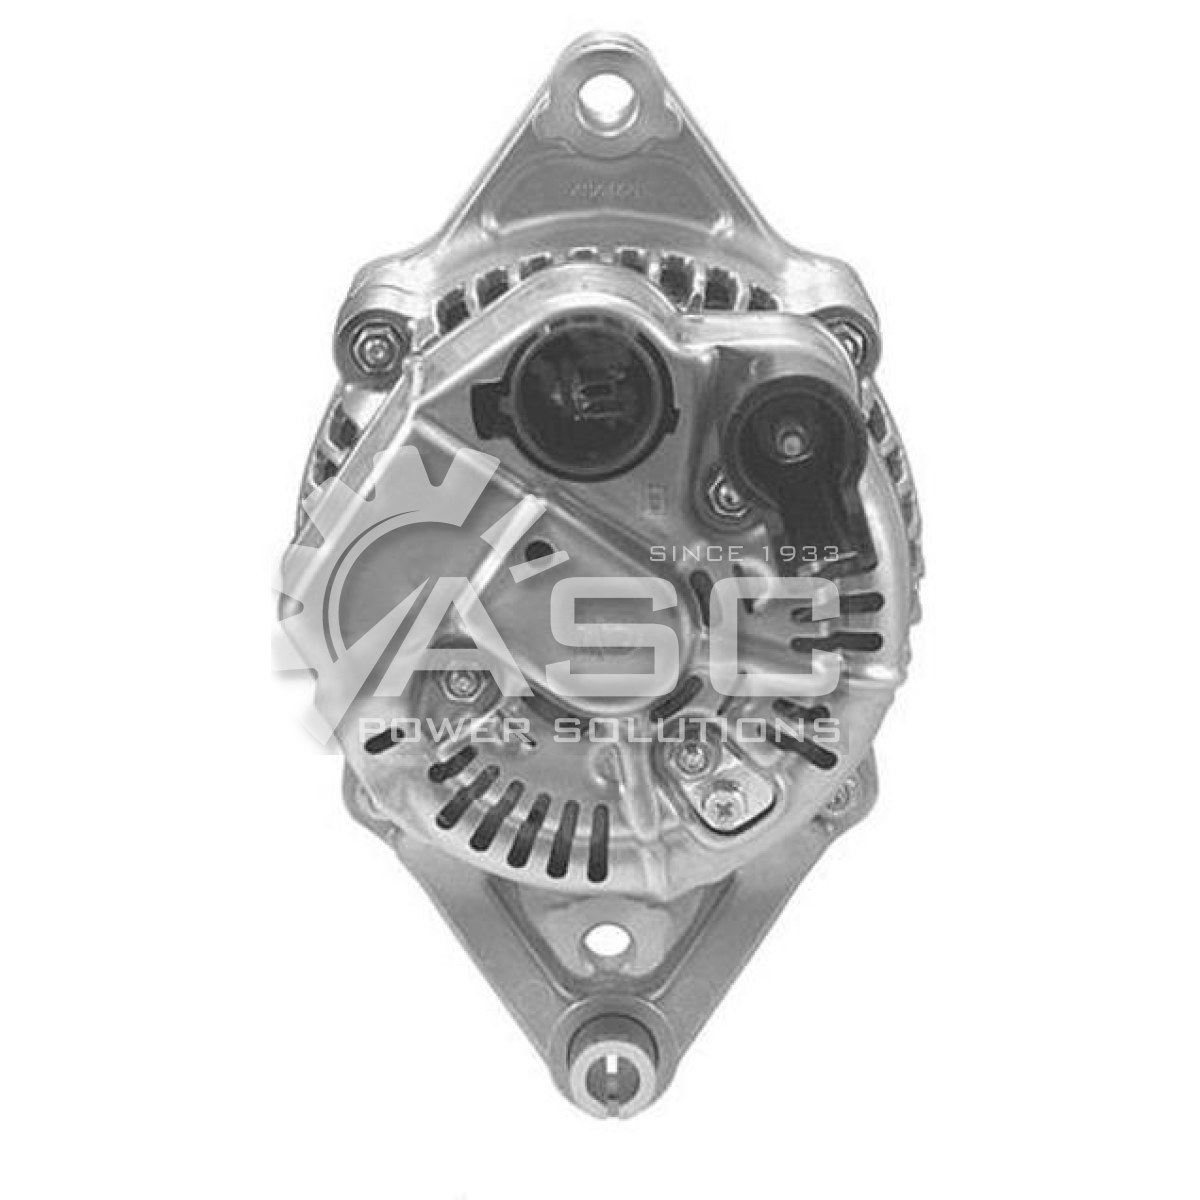 A521236_ASC, Alternator, 12V, 90 Amp, ER, IF, CW, S6, 57MM, DENSO, Reman